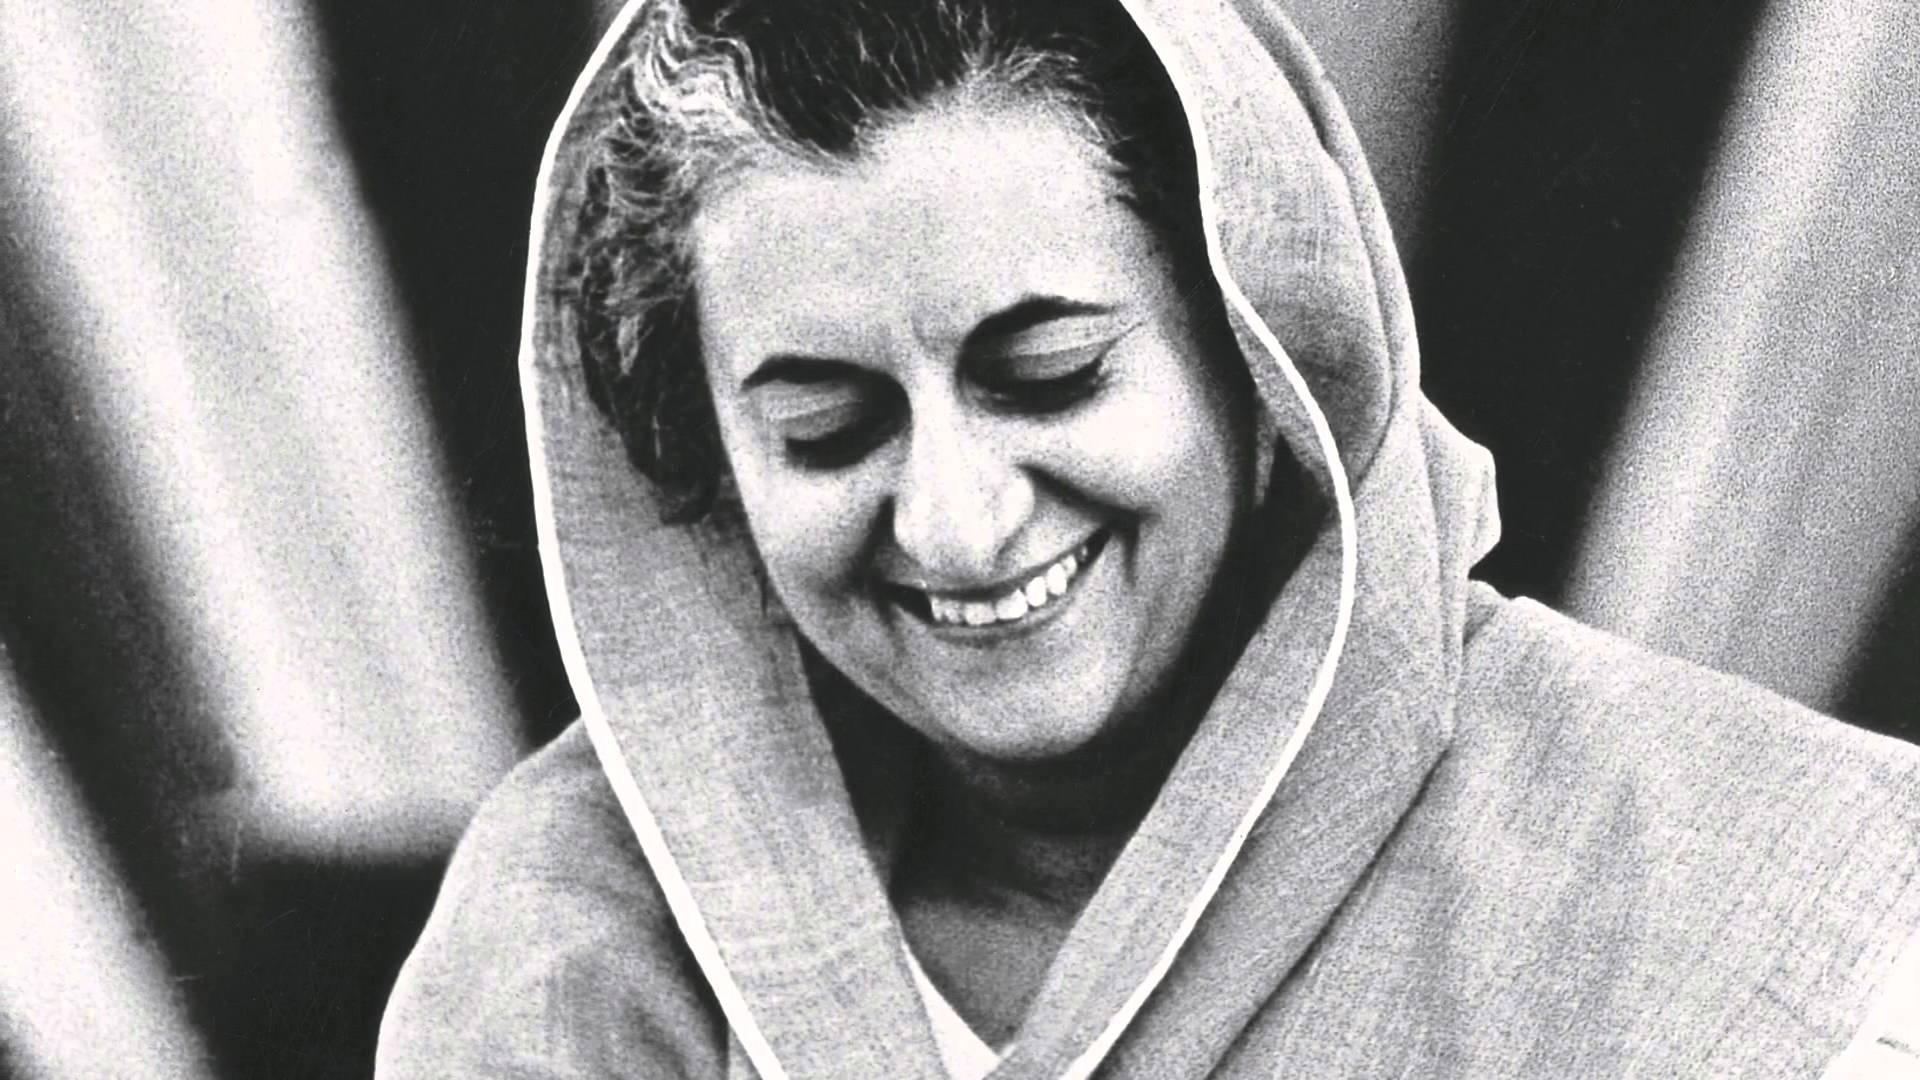 Black and white potrait of Indira Gandhi